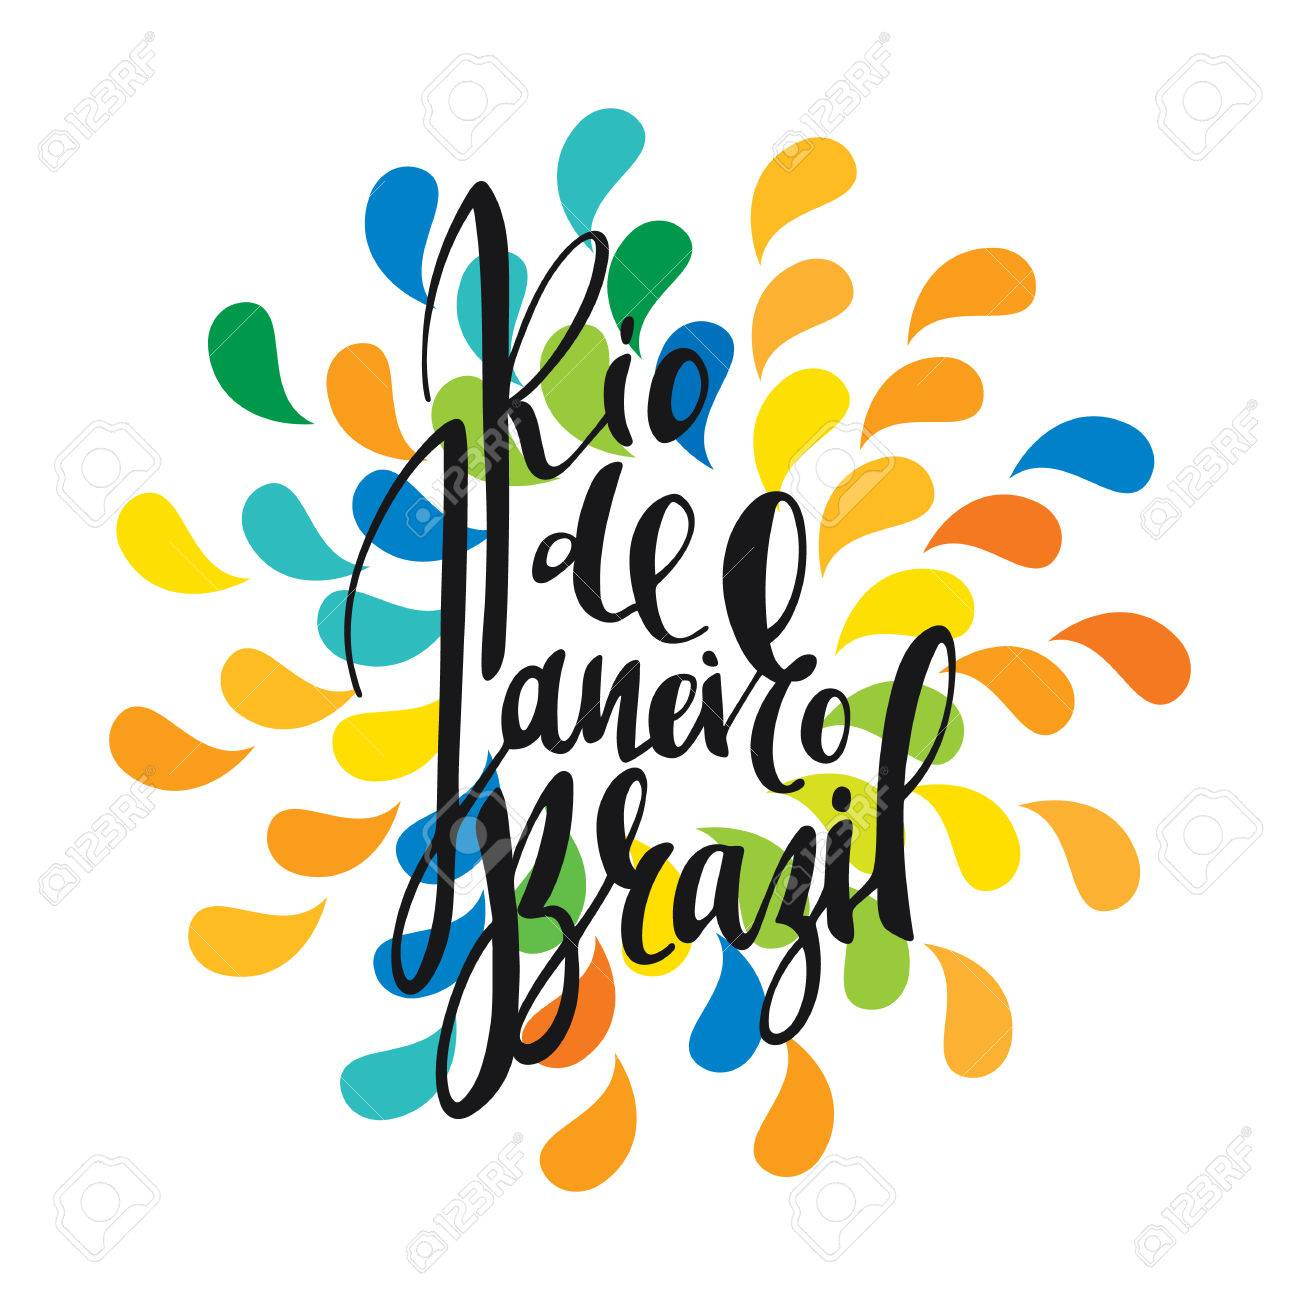 Inscription rio de janeiro brazil background colors of the inscription rio de janeiro brazil background colors of the brazilian flag calligraphy handmade greeting m4hsunfo